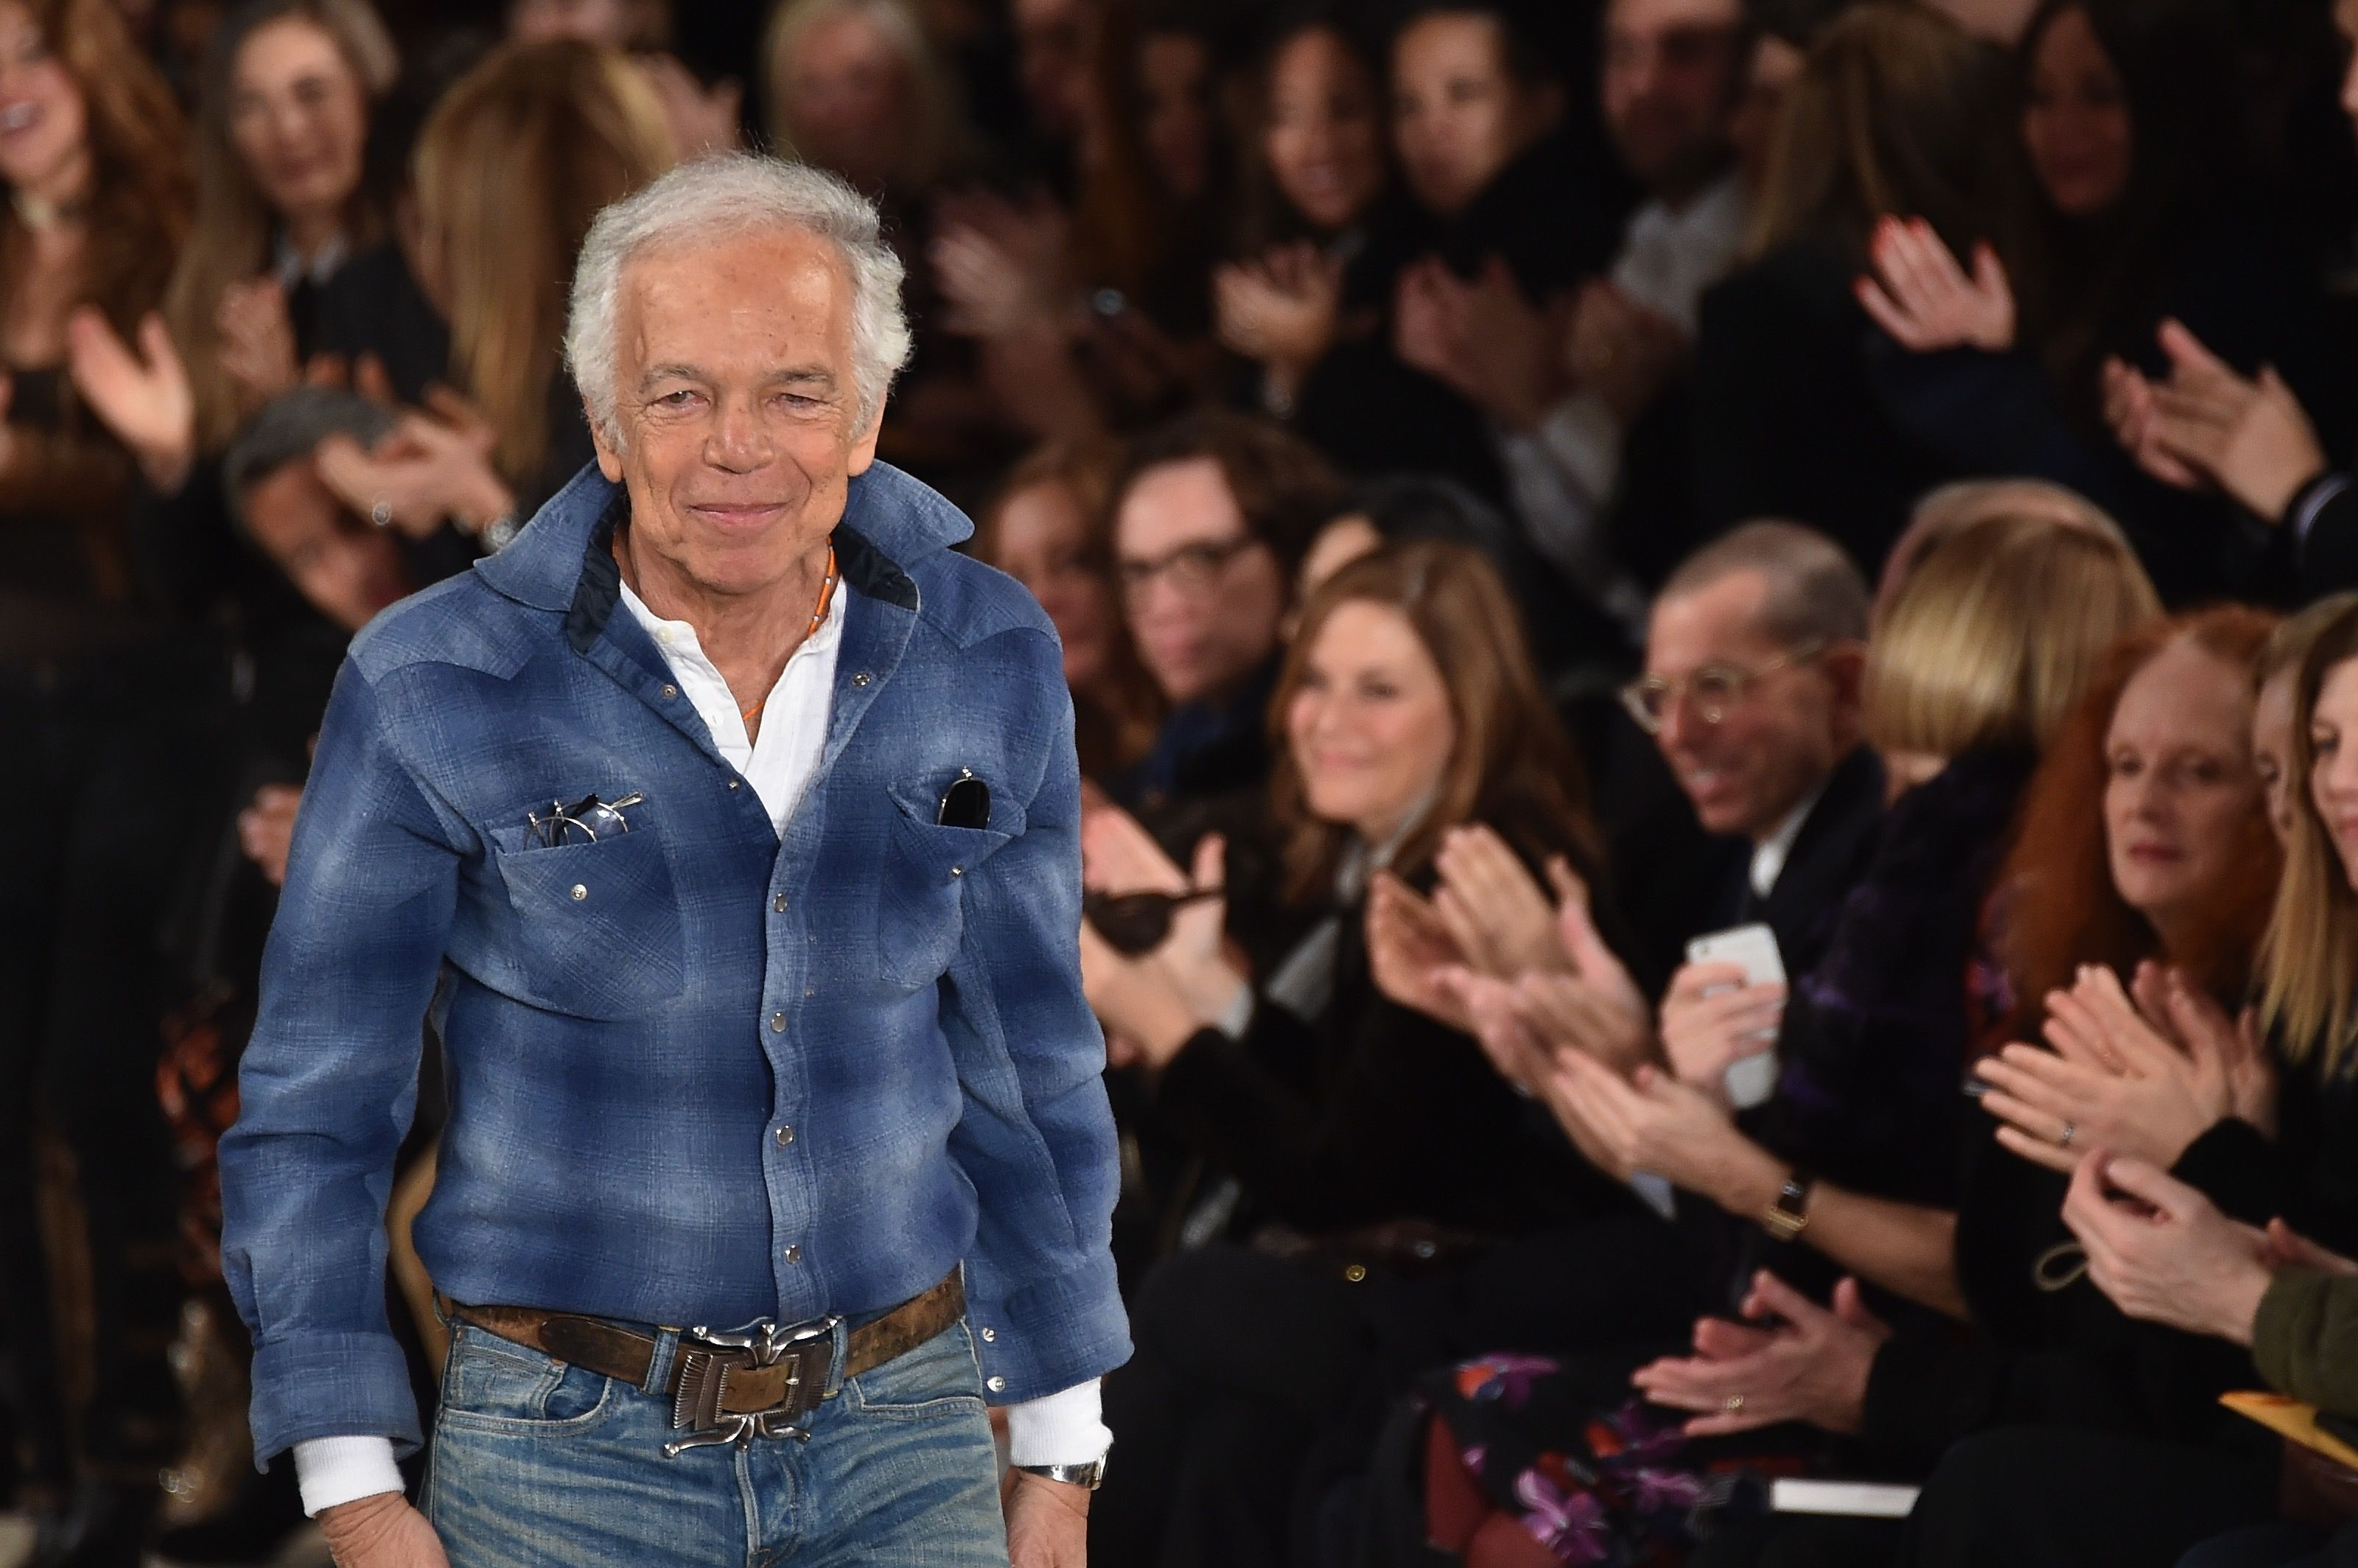 Ralph Lauren Fashion Designer | 9 Facts About Ralph Lauren Fashion Designer The Forward